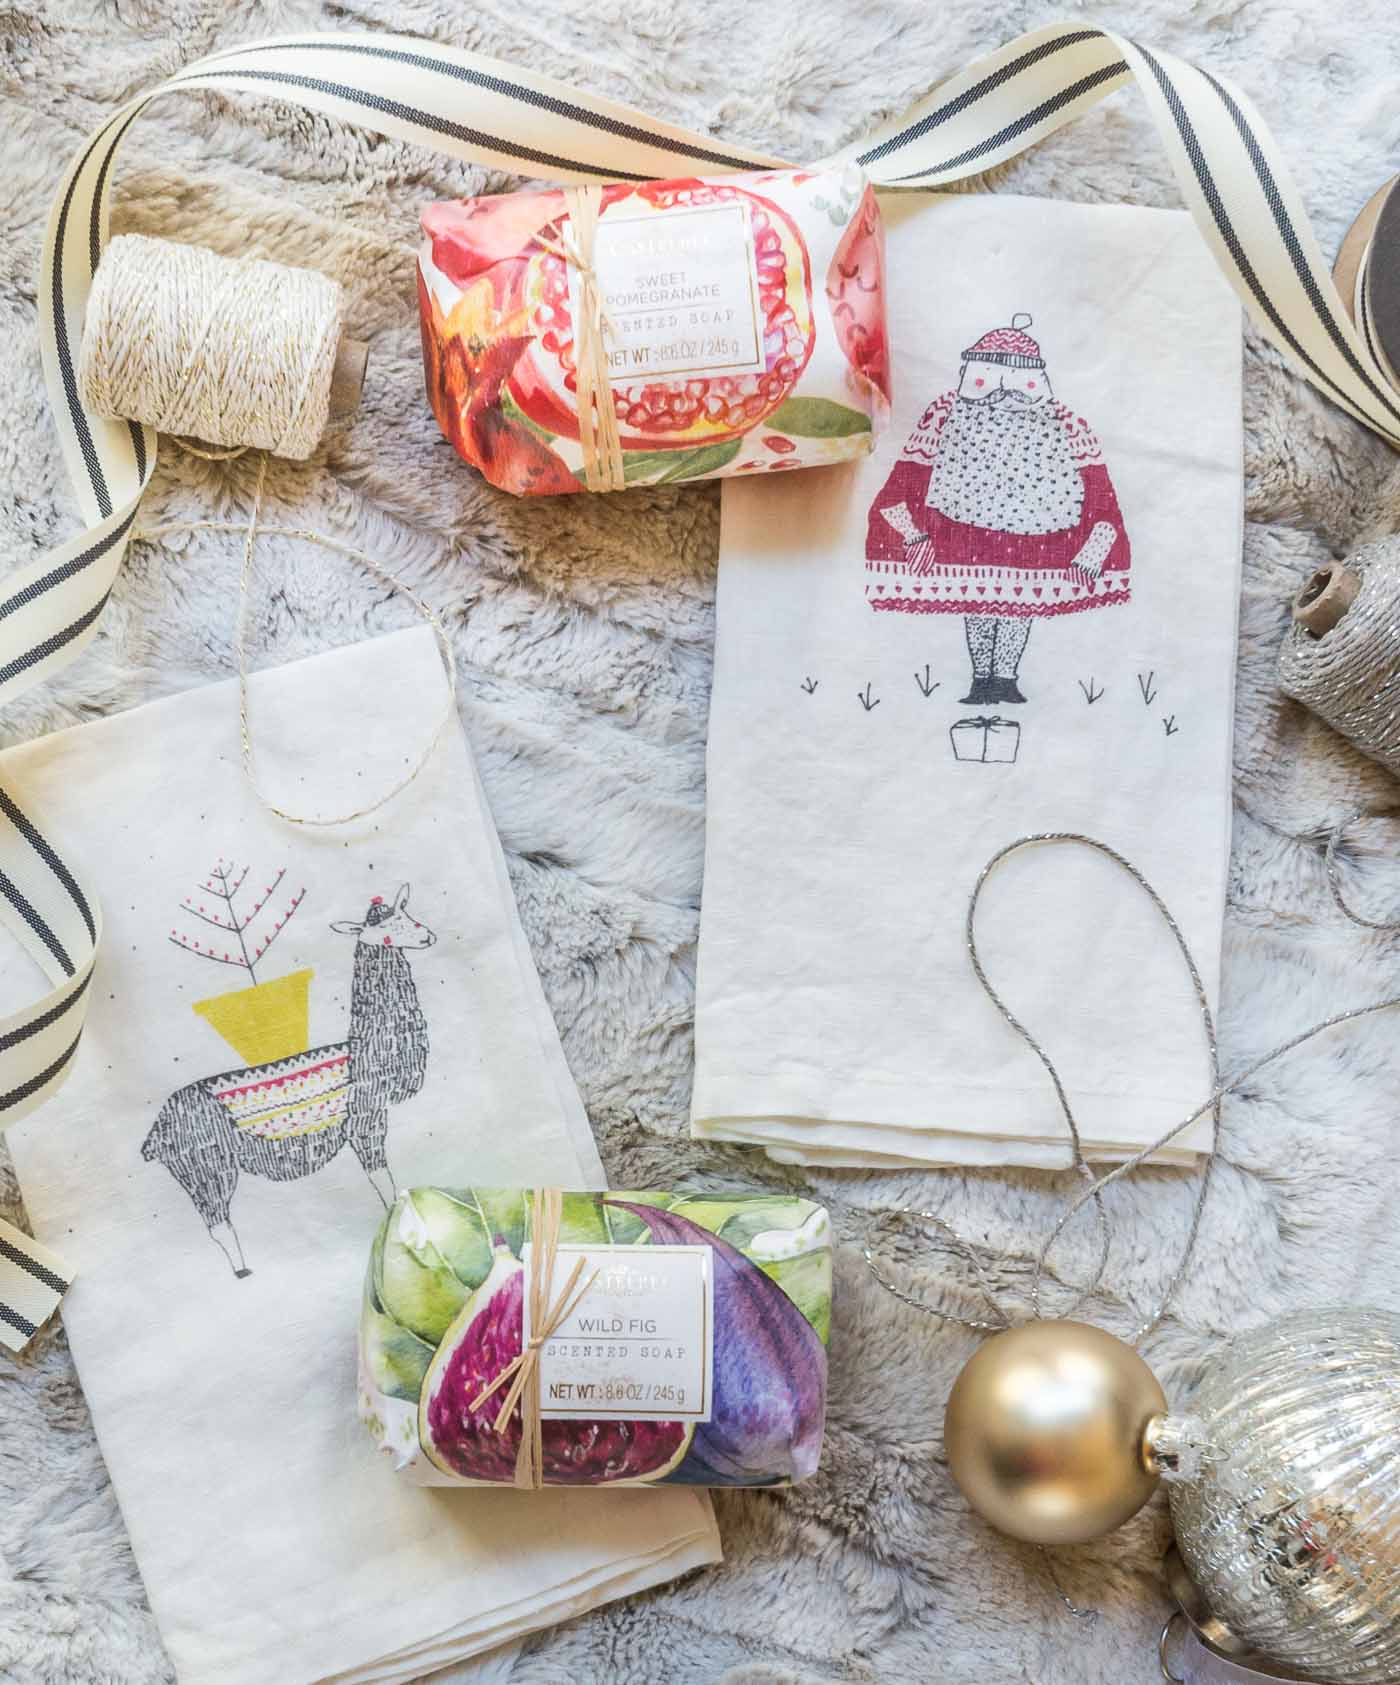 Christmas Prep List & Hostess Gift Ideas